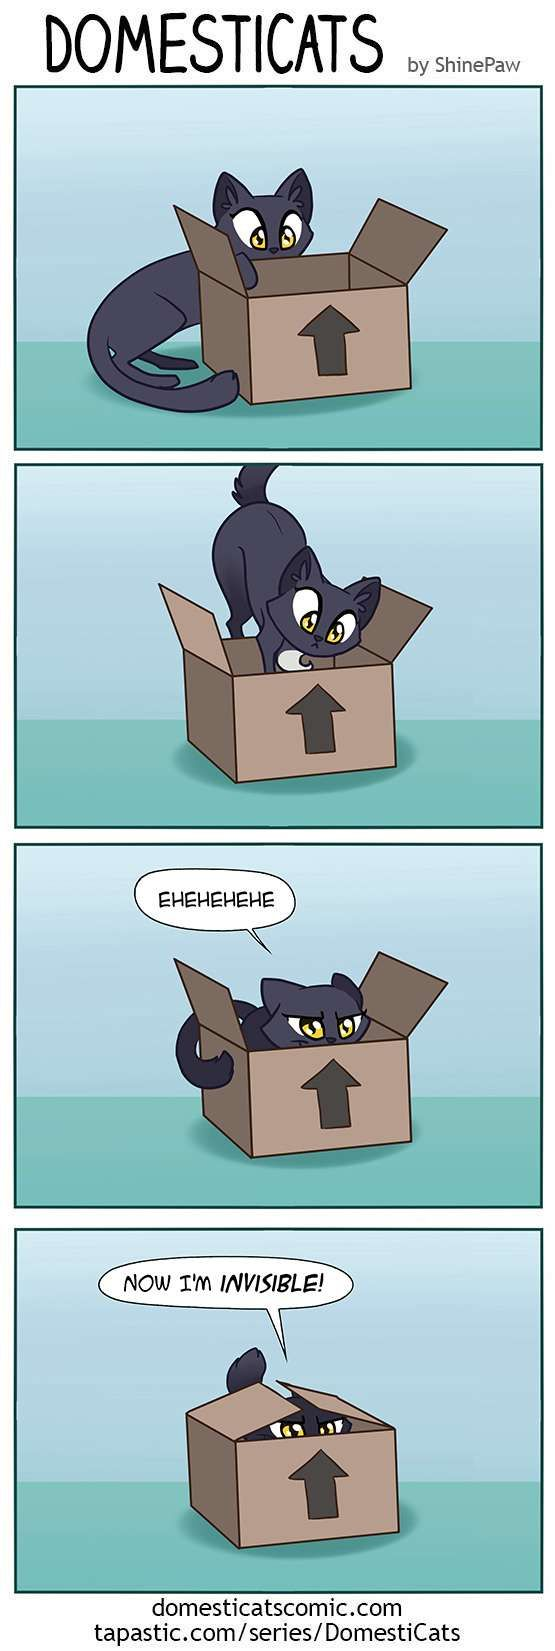 DomestiCats :: Invisible | Tapastic Comics - image 1